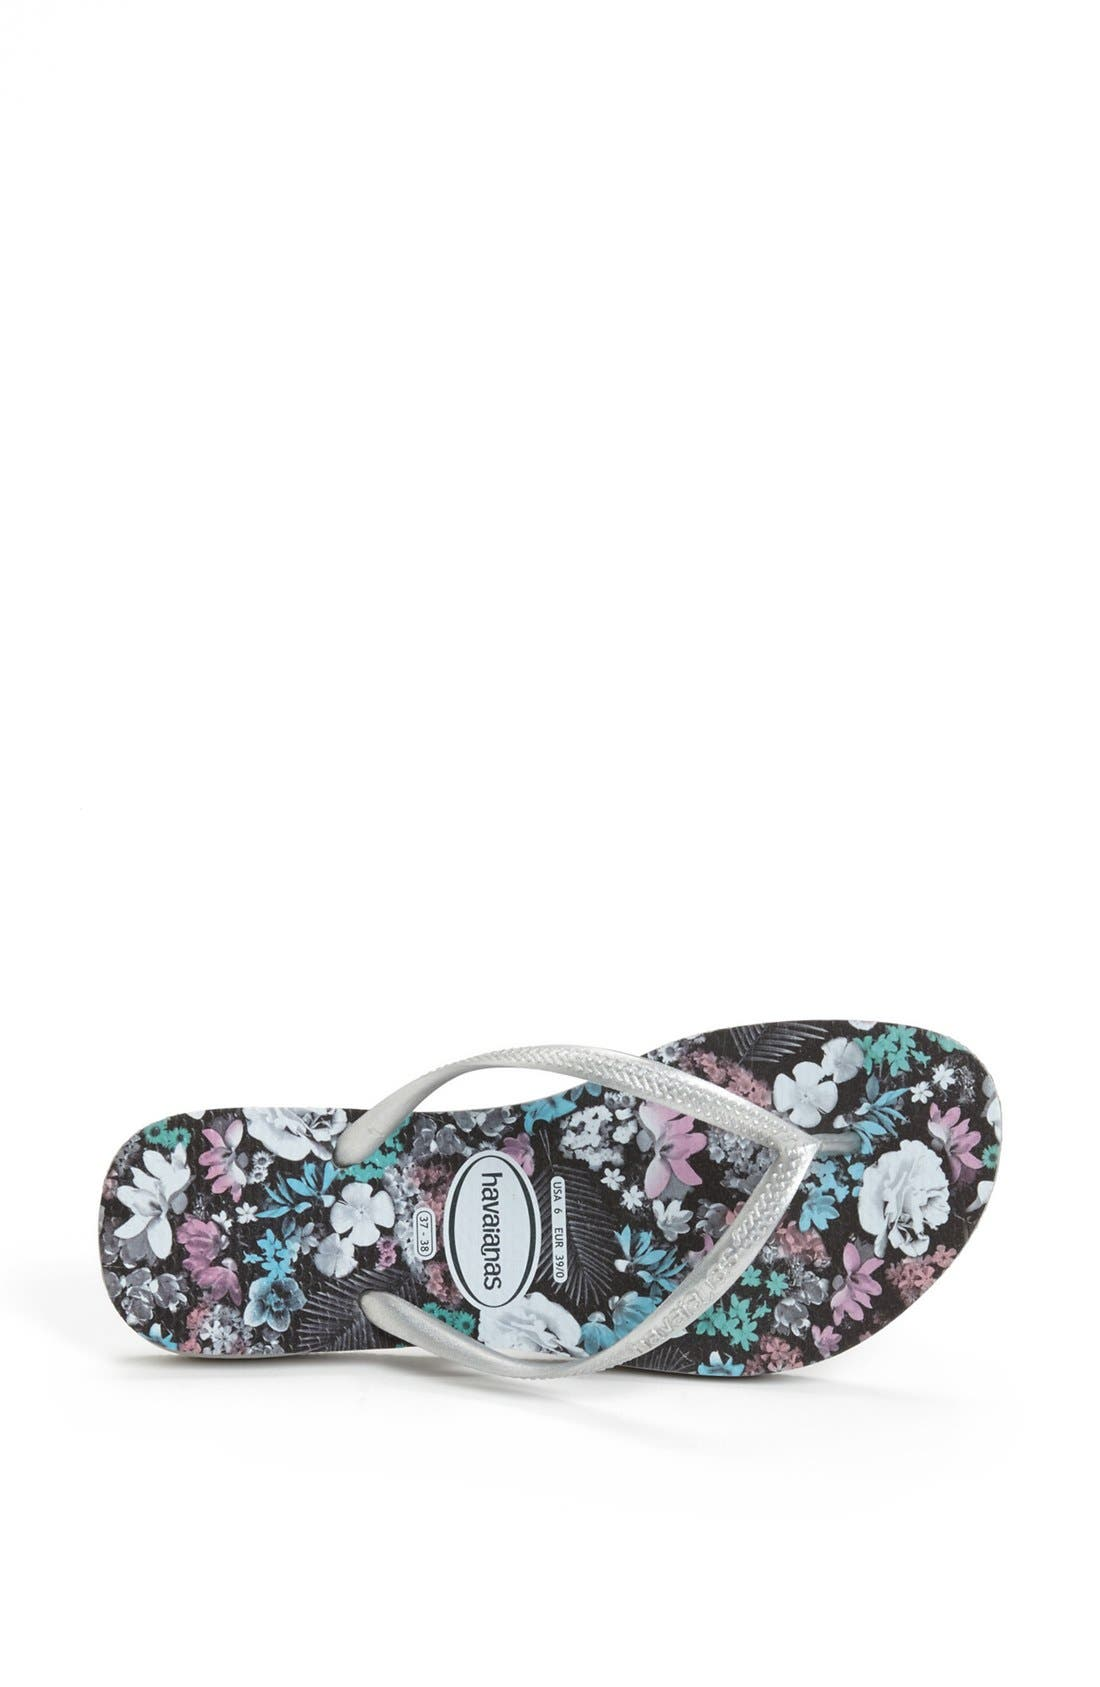 Alternate Image 3  - Havaianas 'Slim Floral' Flip Flop (Women)